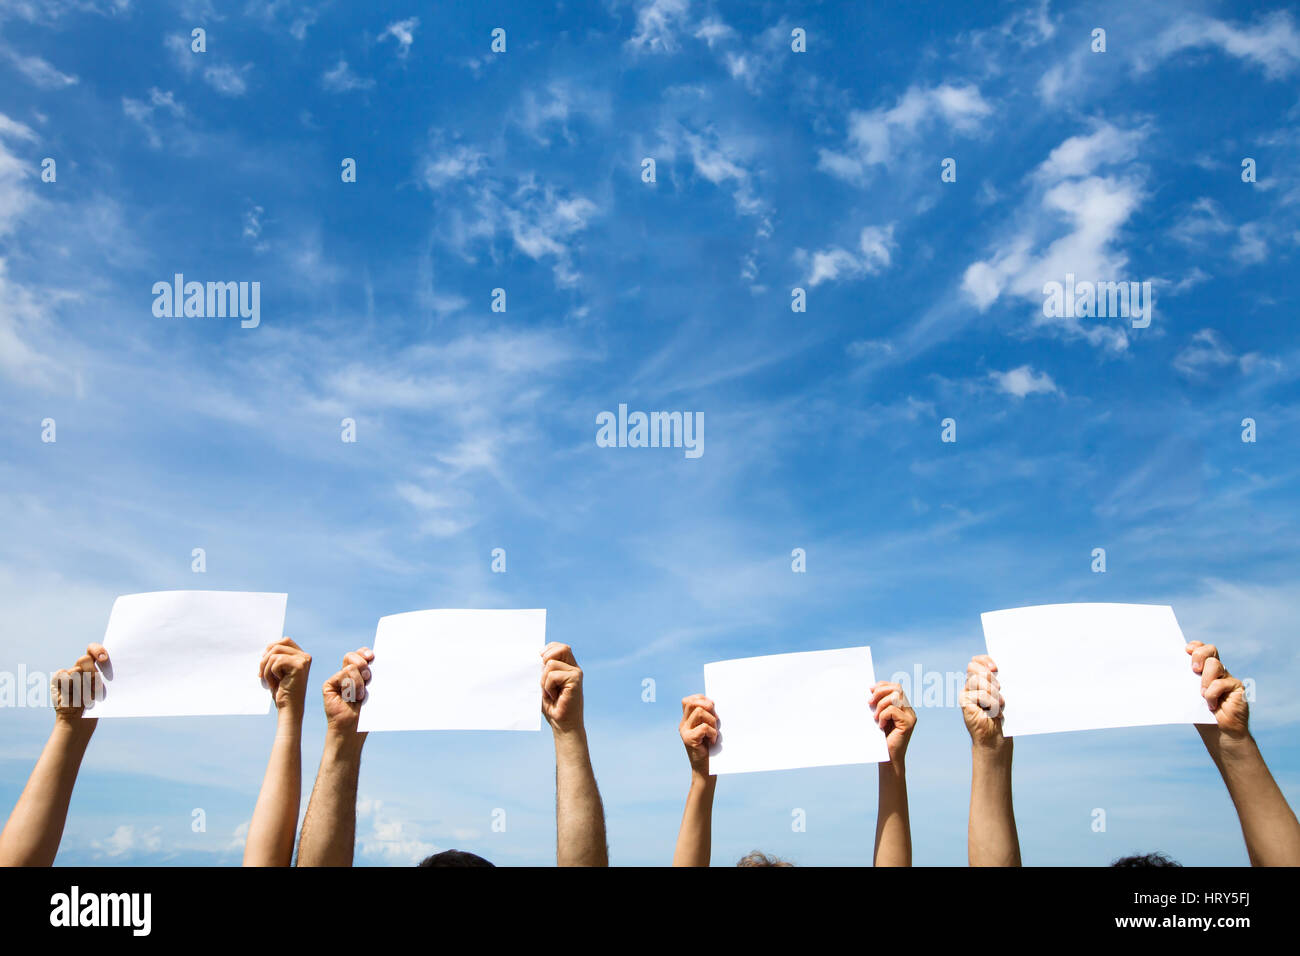 group of people holding empty blank paper signs on blue sky background - Stock Image